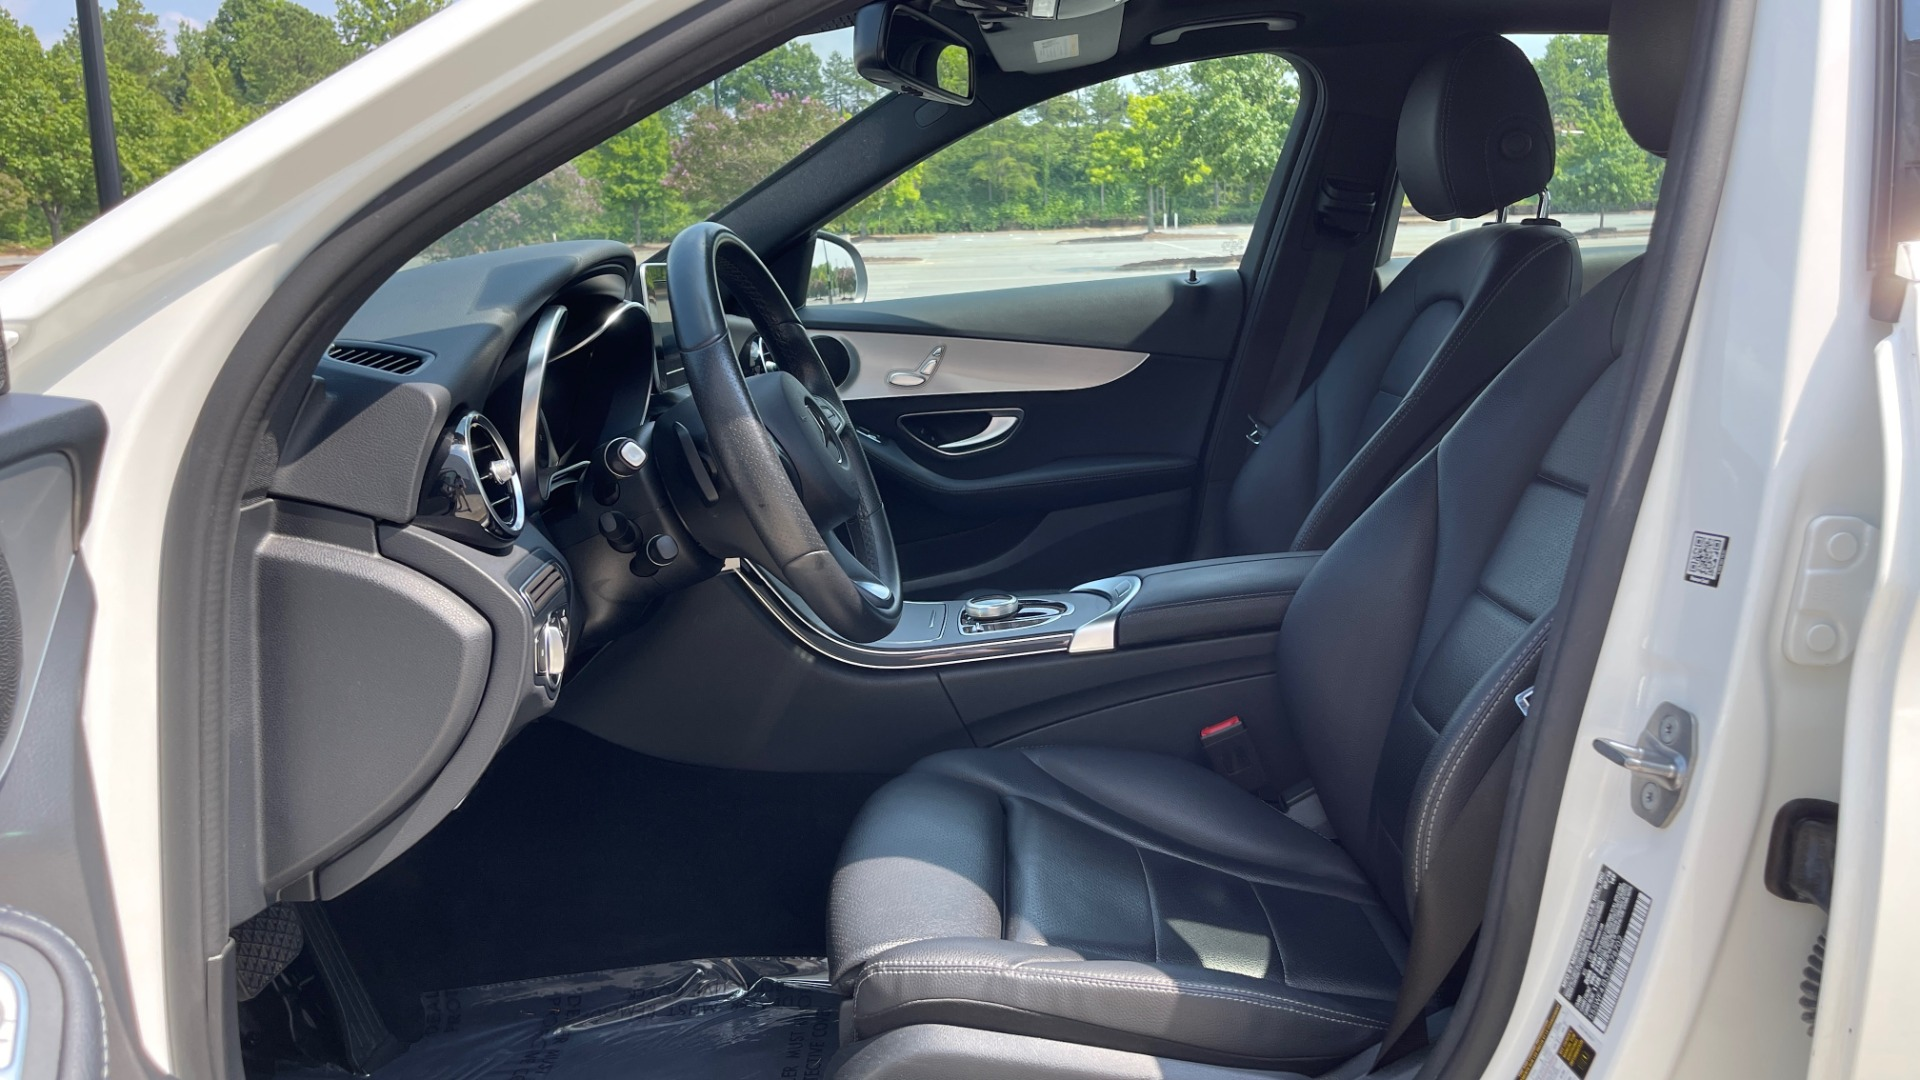 Used 2018 Mercedes-Benz C-CLASS C 300 / 2.0L / RWD / SUNROOF / APPLE~ANDROID / REARVIEW for sale $29,995 at Formula Imports in Charlotte NC 28227 28